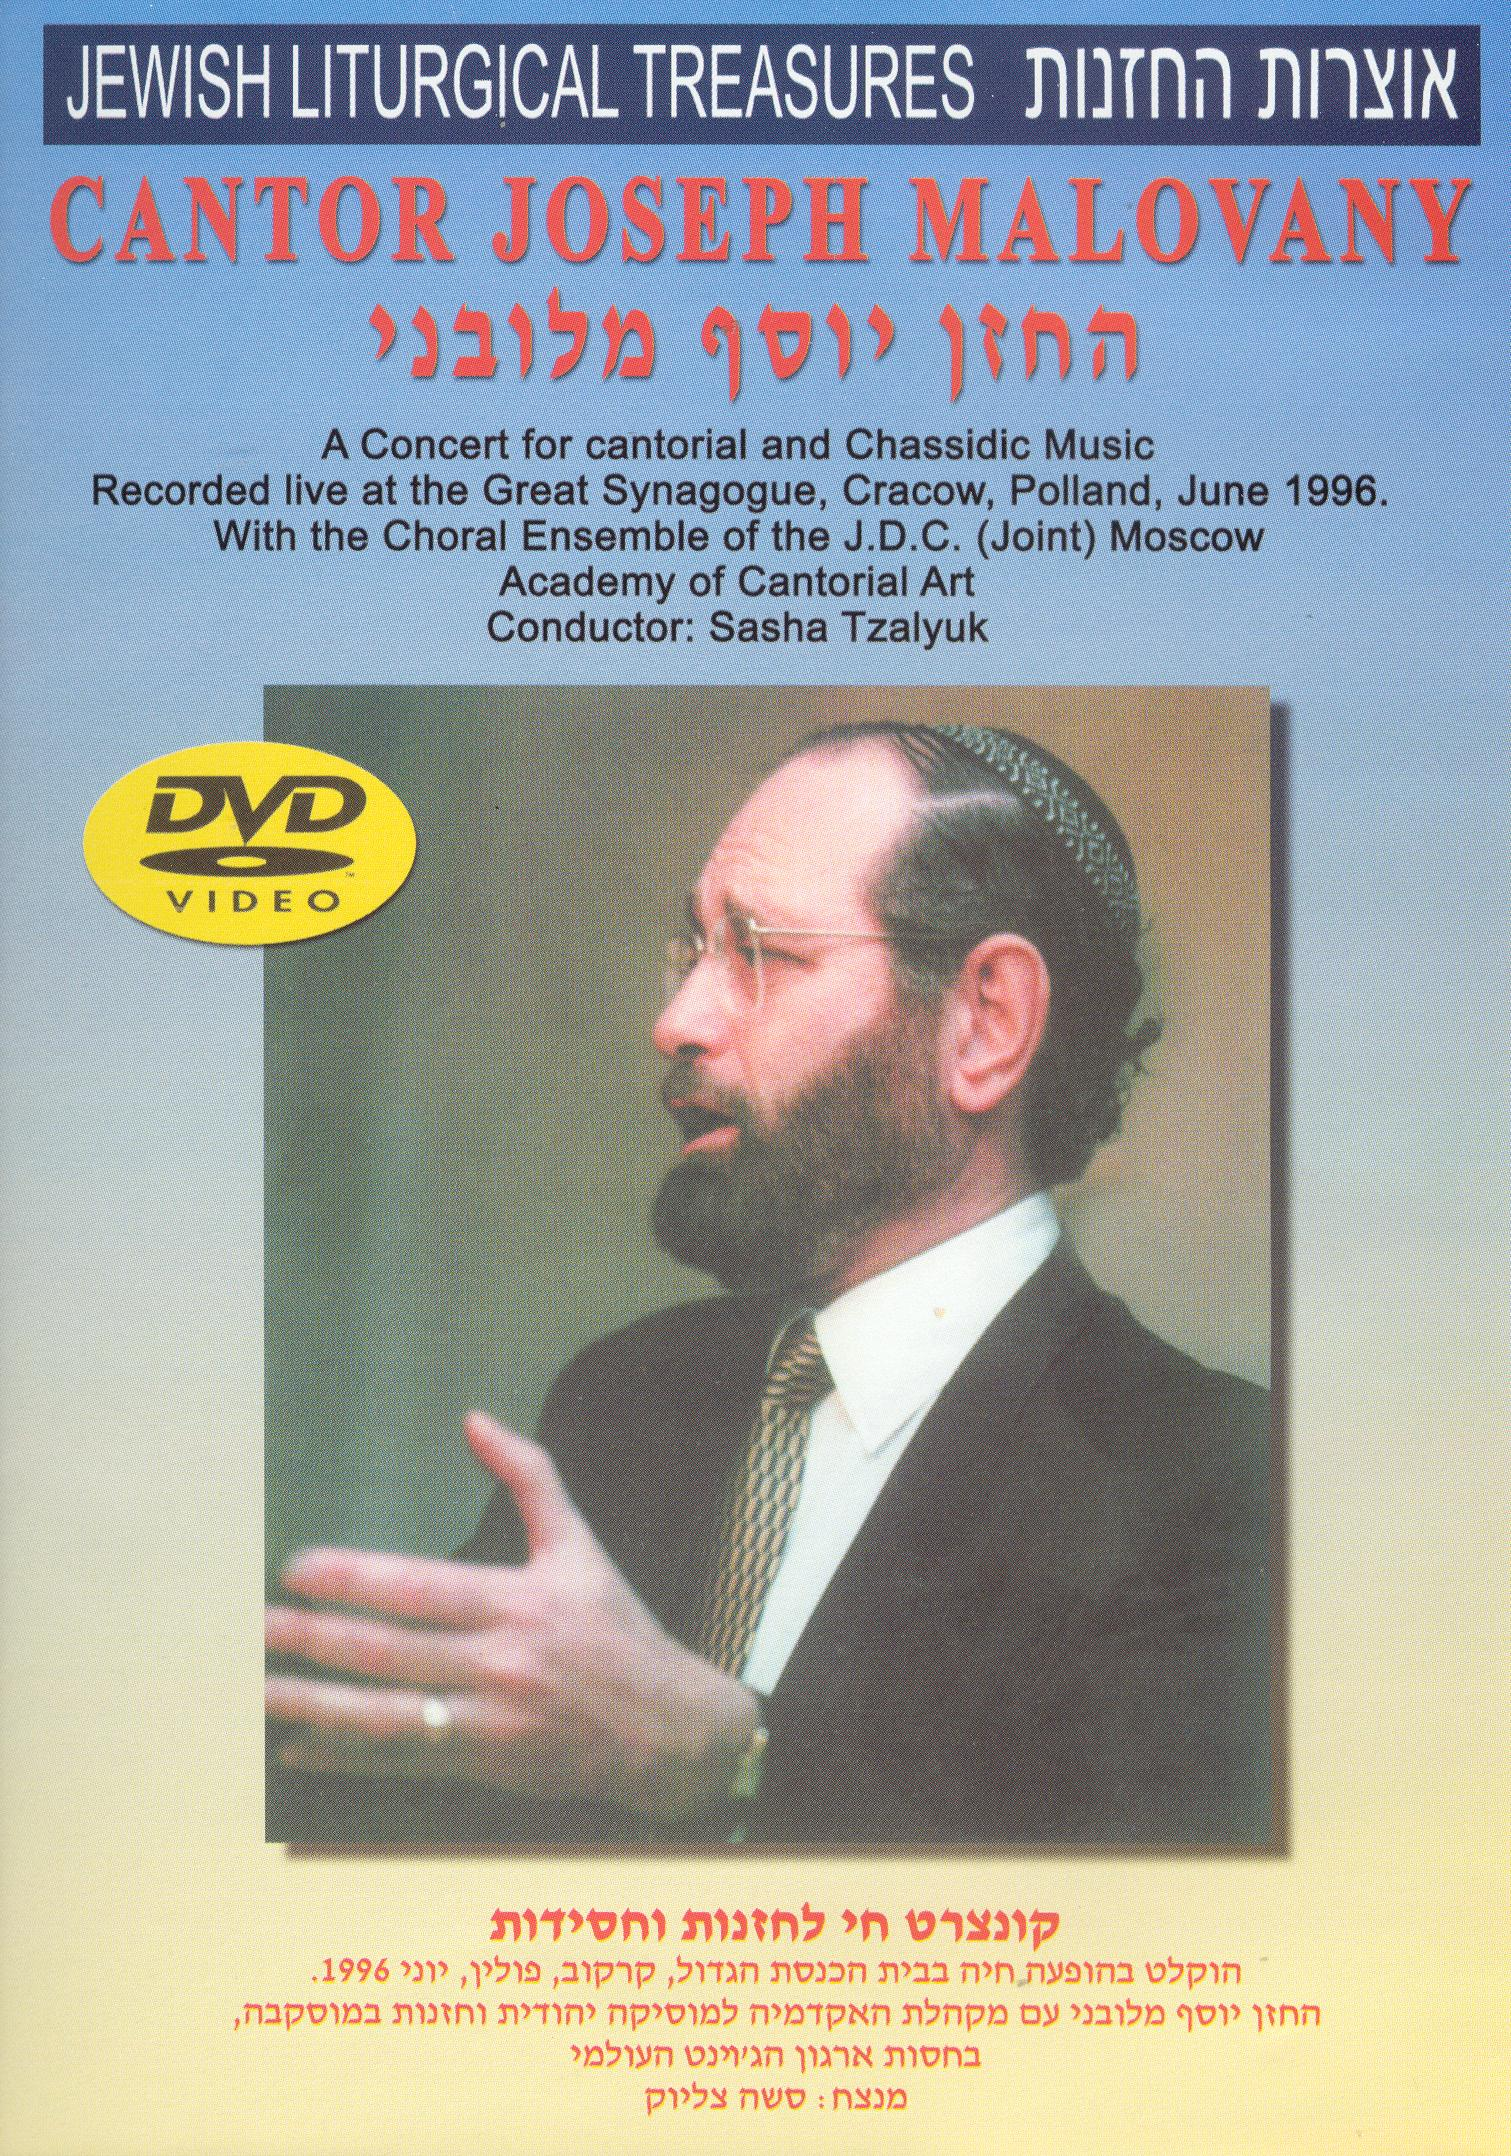 Cantor Joseph Malovany: Concerto For Cantorial and Chassidic Music